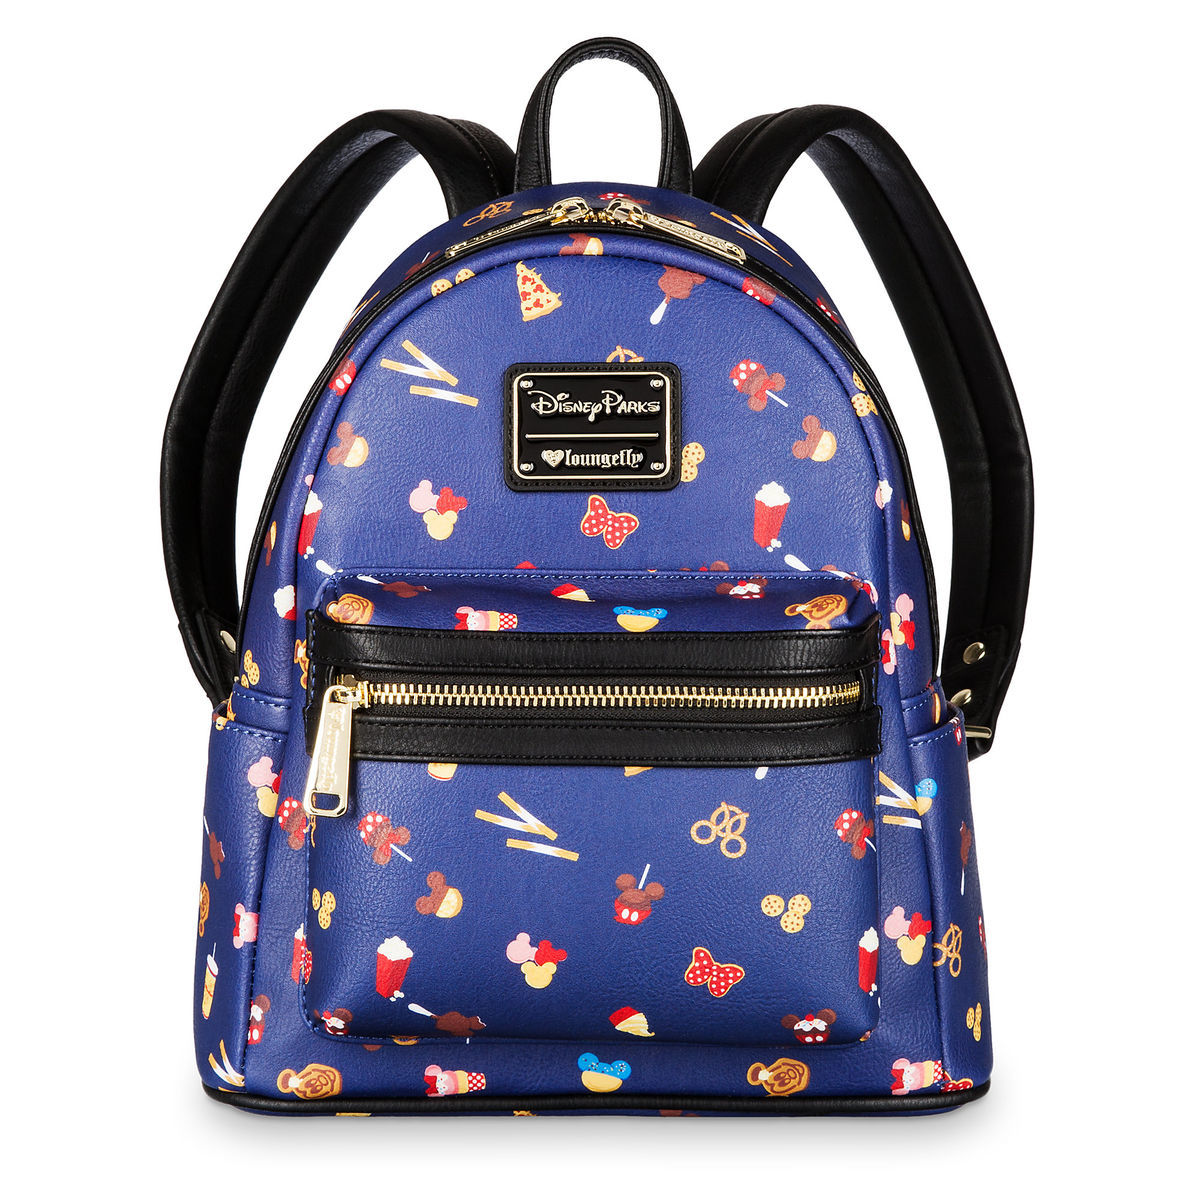 6a67fd47786 Add to My Lists. Disney Loungefly Backpack - Disney Parks Treats